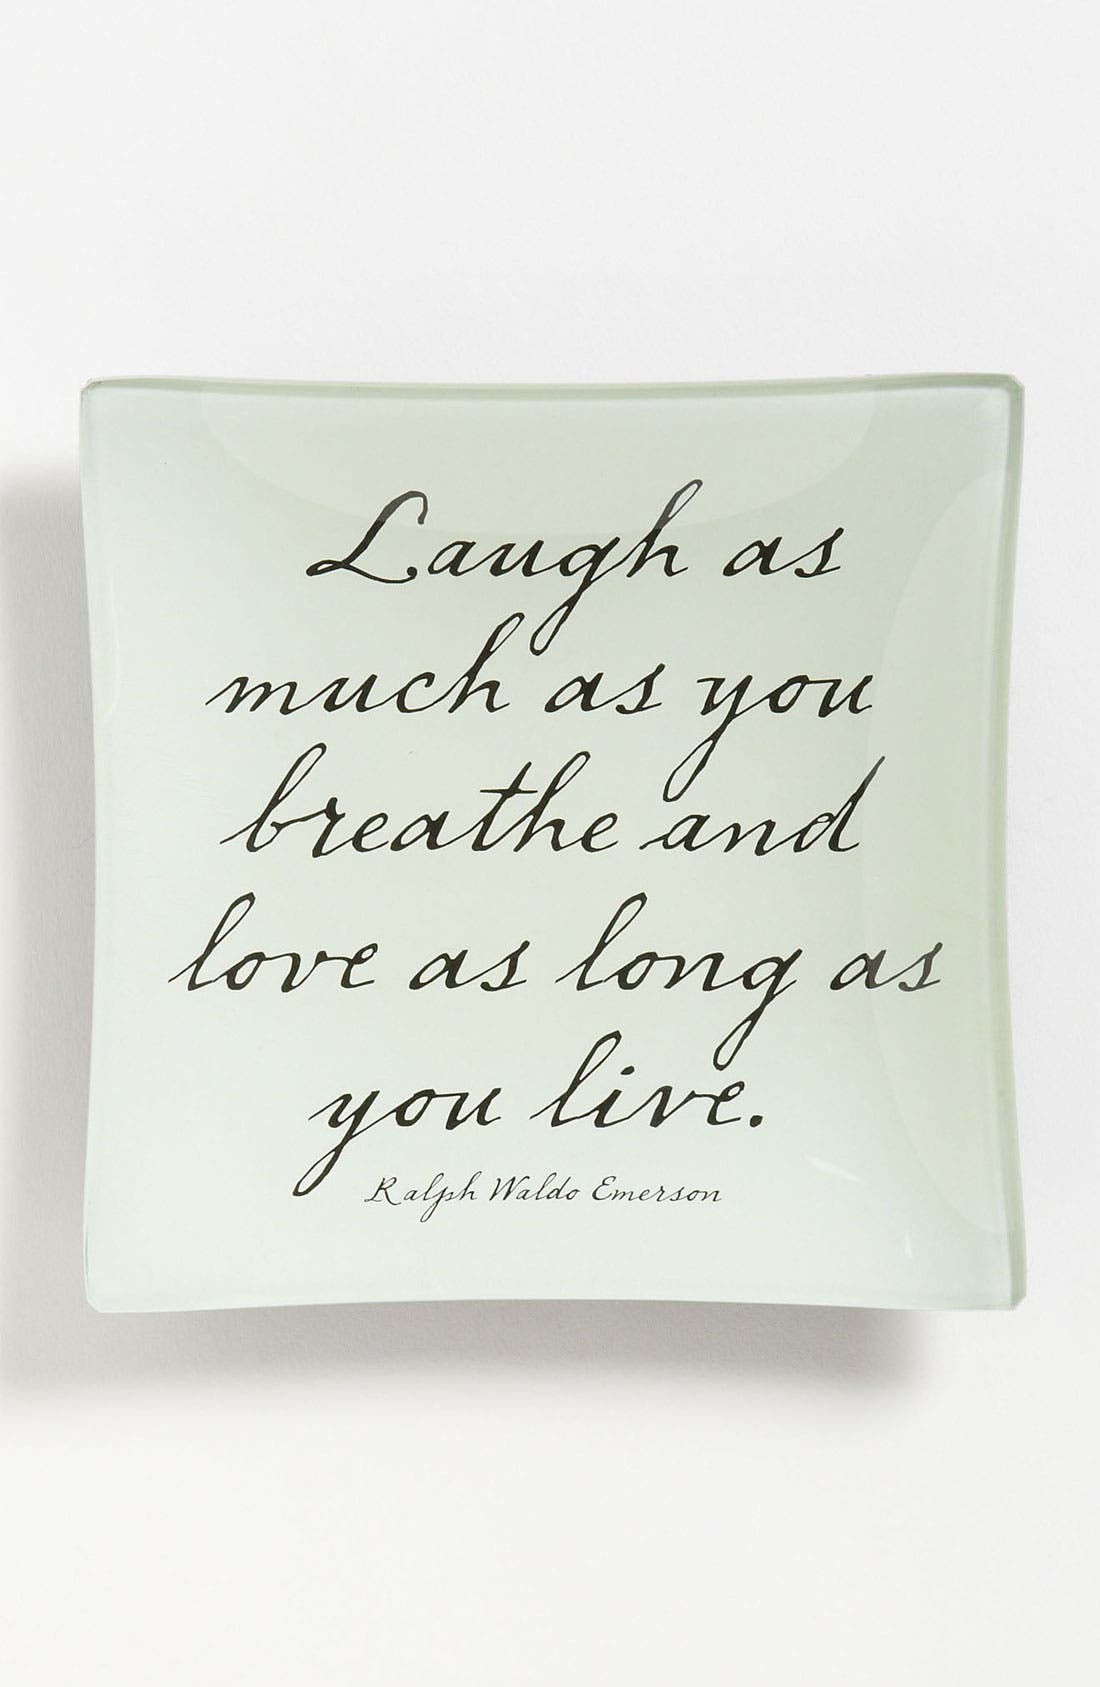 Alternate Image 1 Selected - Ben's Garden 'Laugh As Much As You Breathe' Trinket Tray